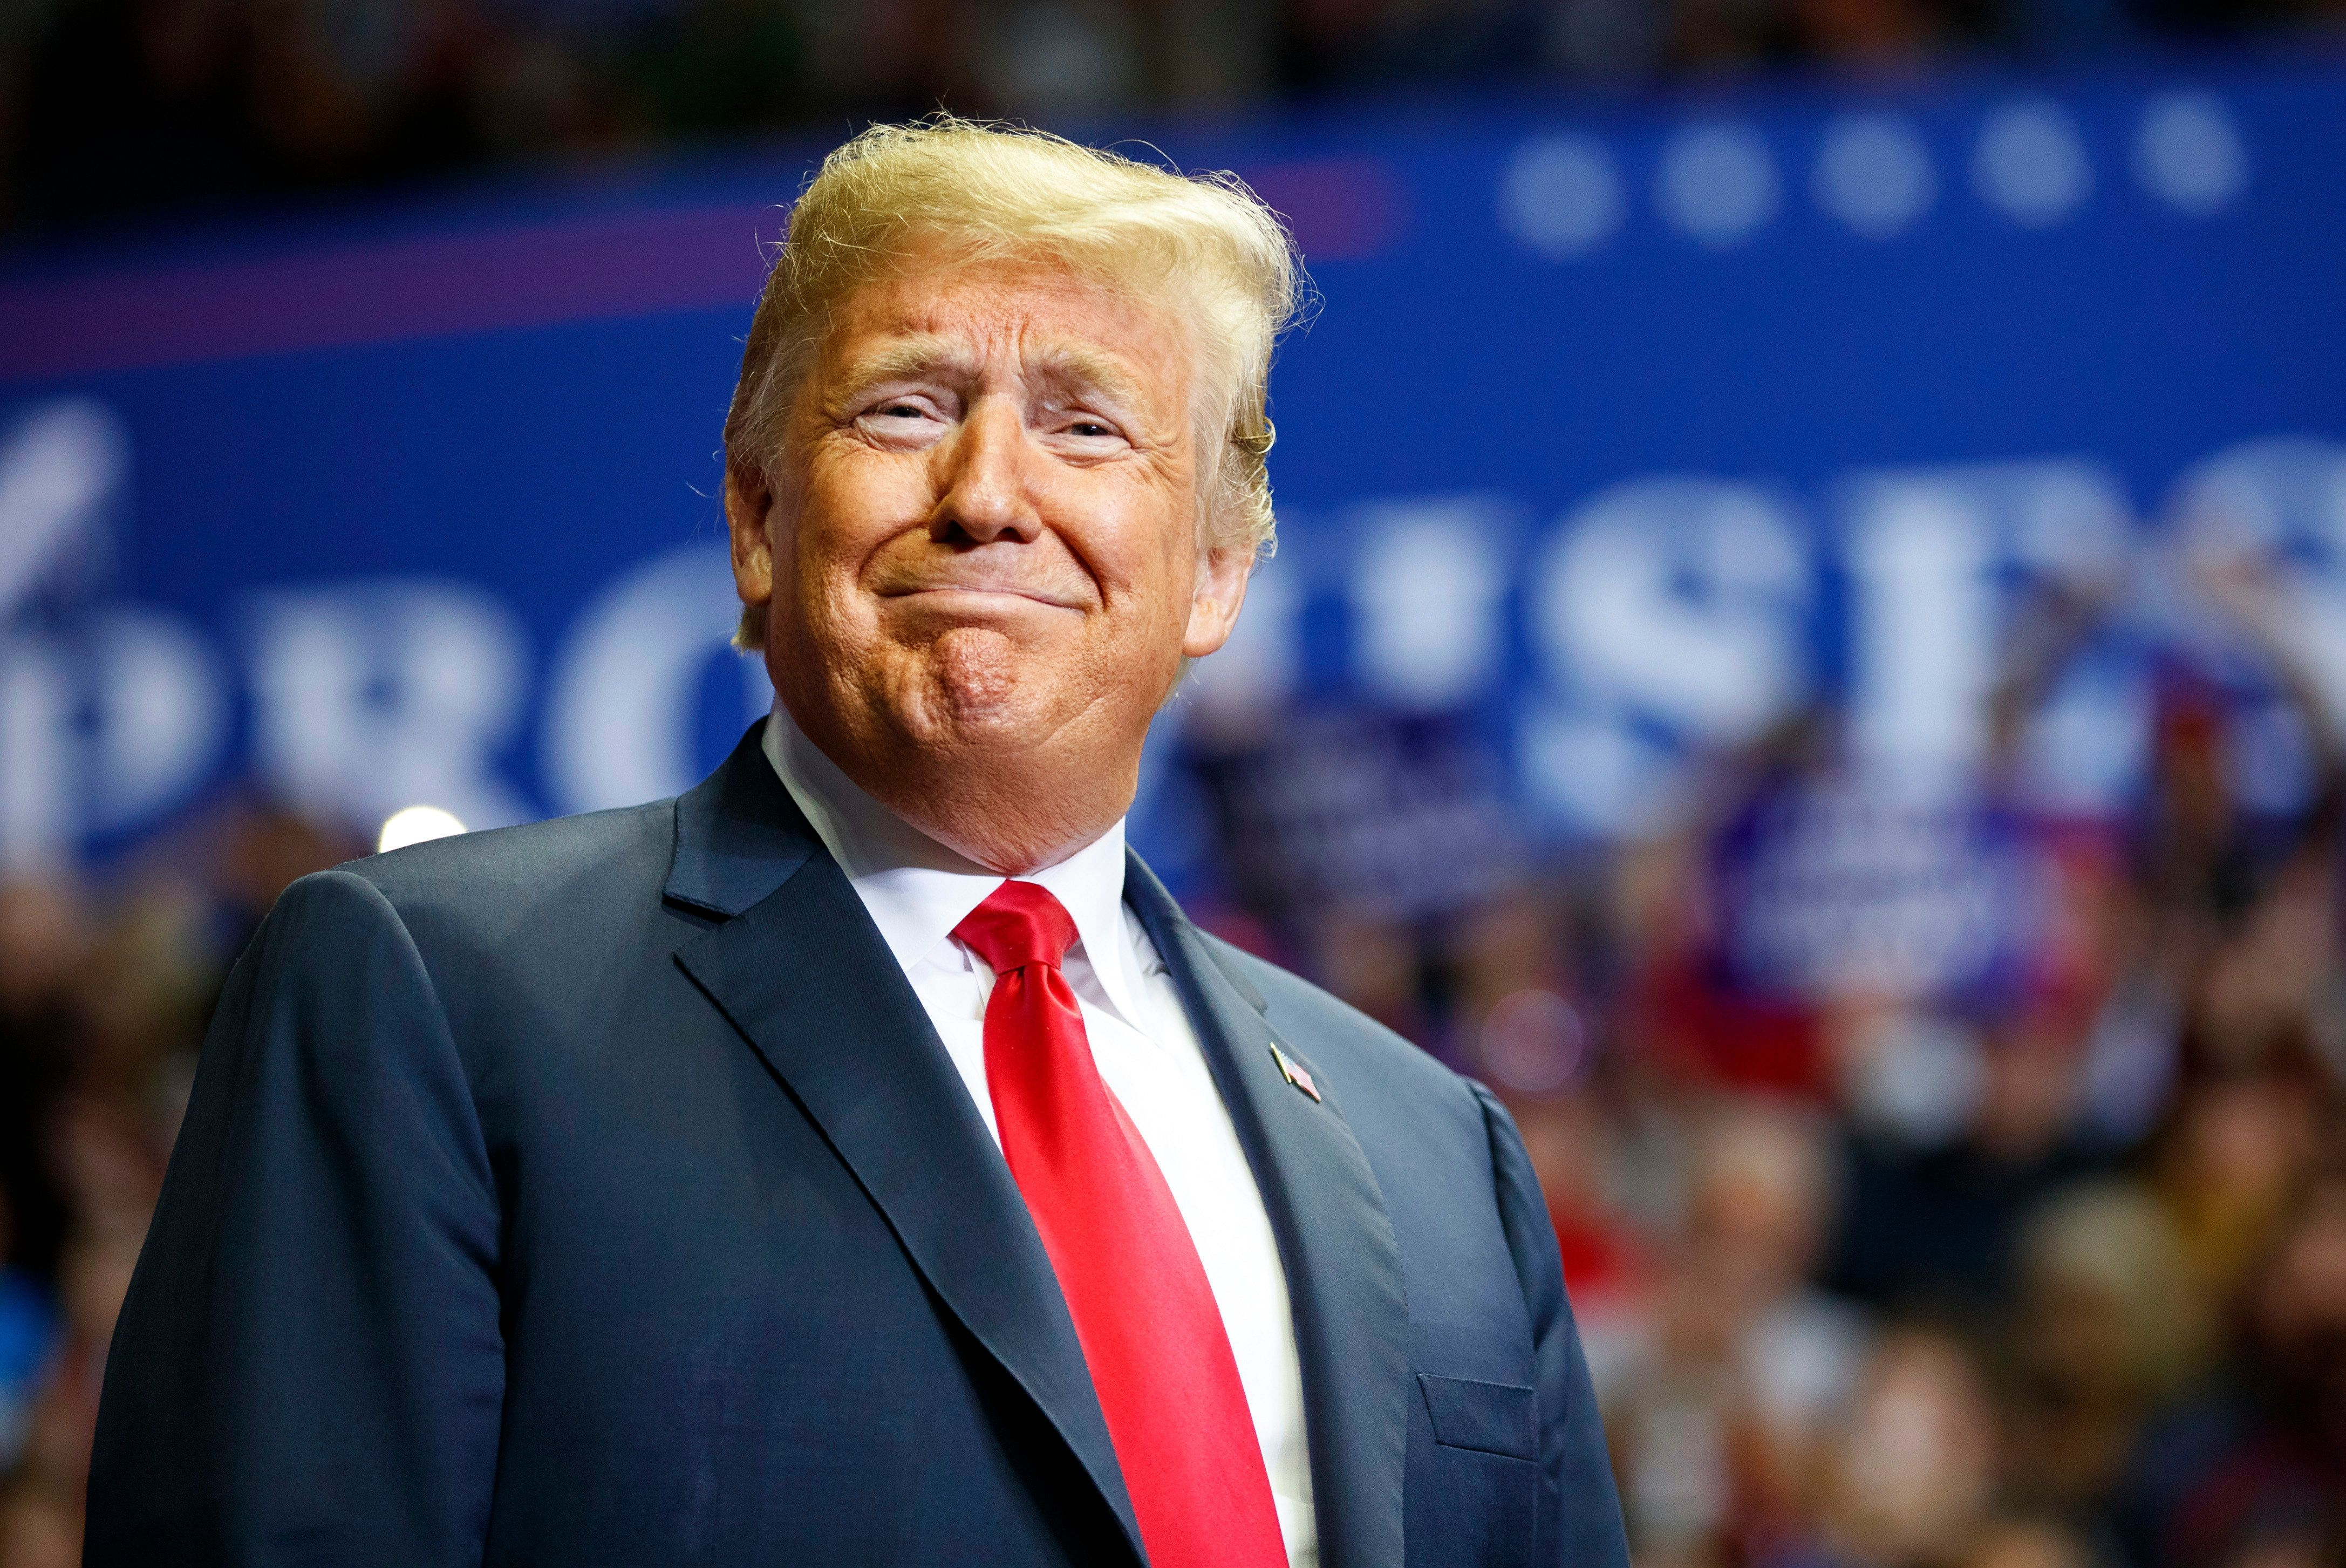 President Donald Trump looks to the cheering crowd as he arrives to speak at a rally at Allen County War Memorial Coliseum, Monday, Nov. 5, 2018, in Fort Wayne, Ind. (AP Photo/Carolyn Kaster)